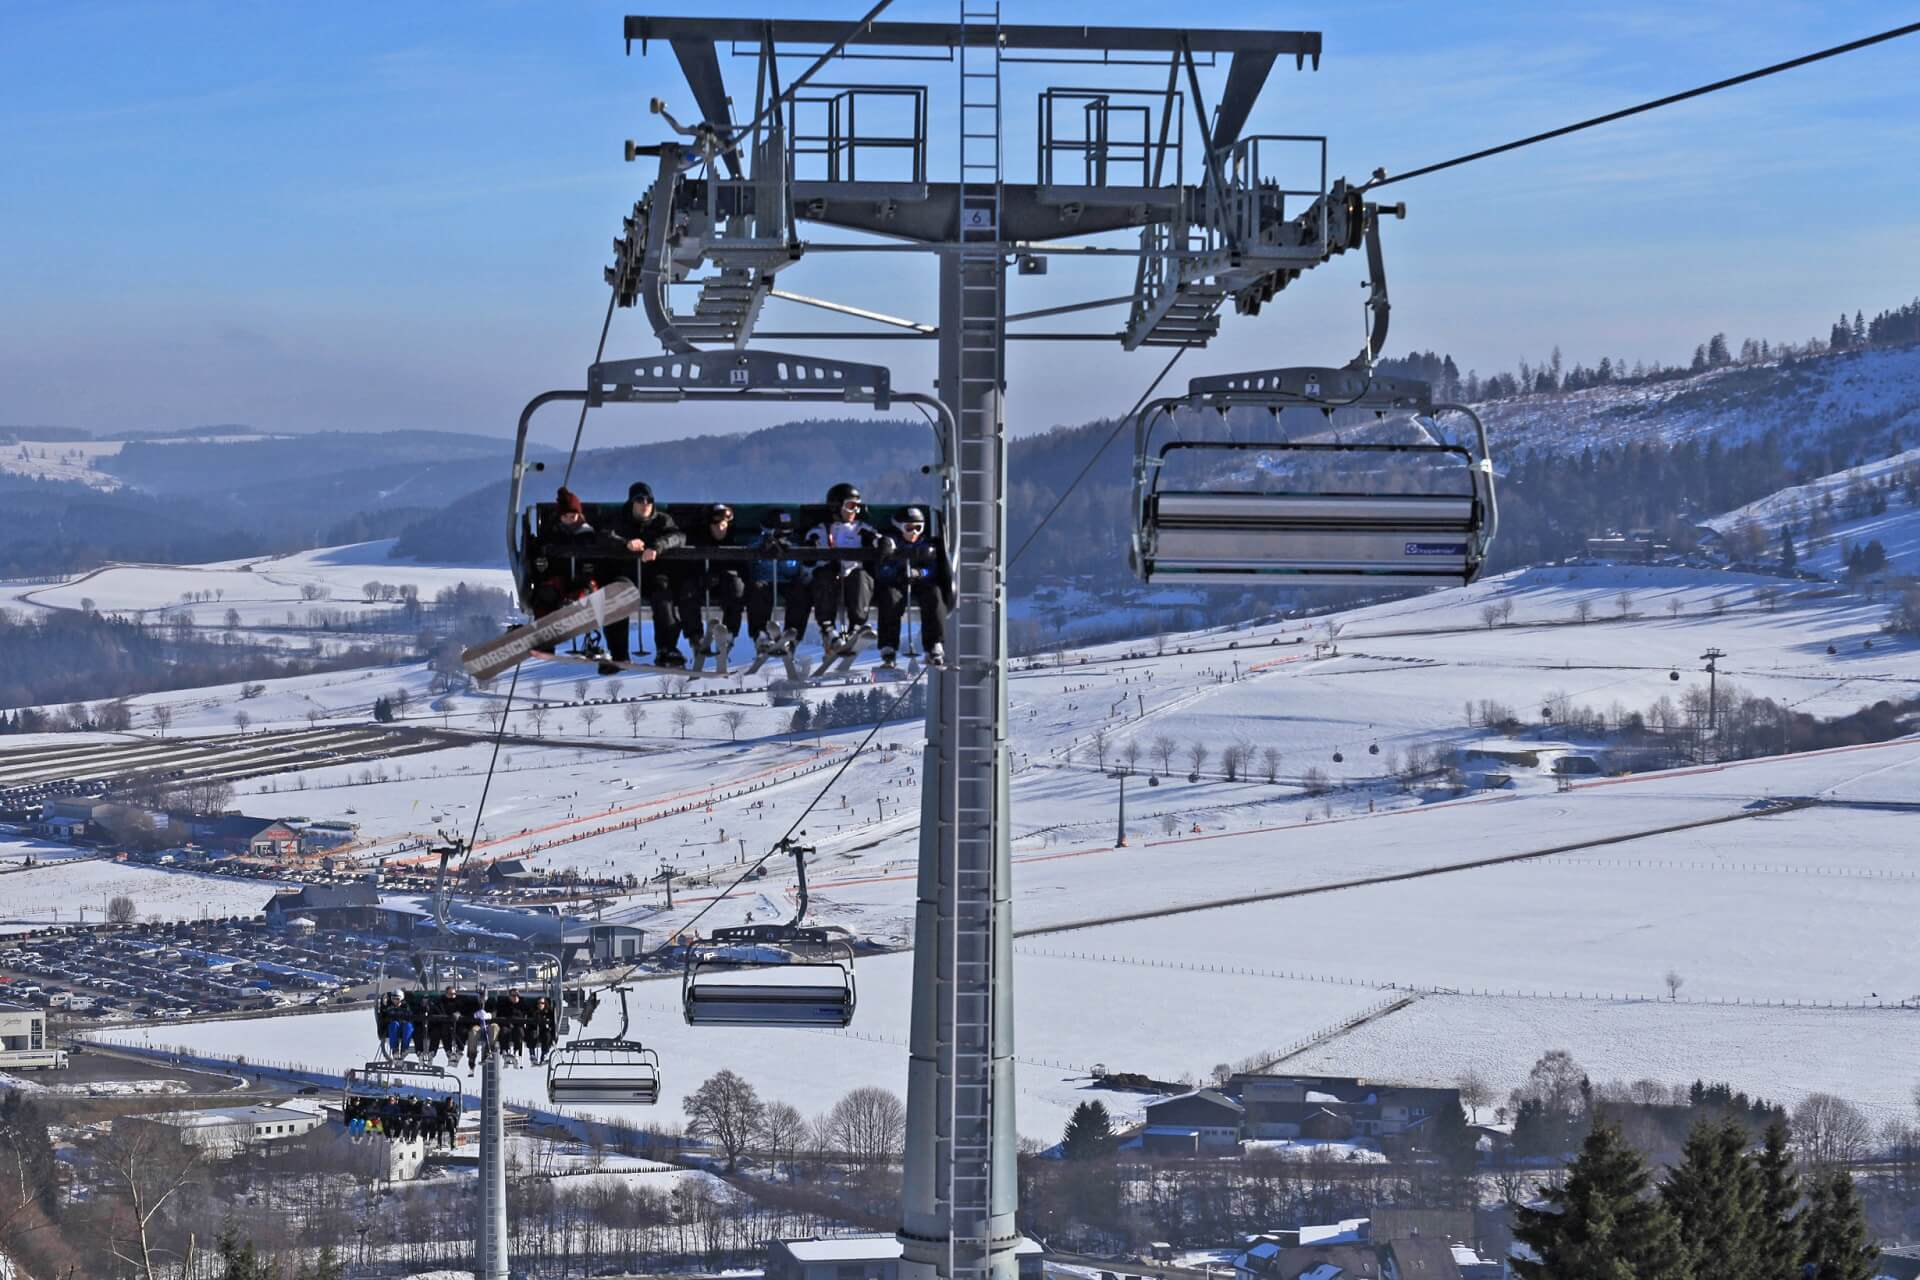 Sessellift am Ritzhagen im Skigebiet Willingen Wintersport-Arena Sauerland